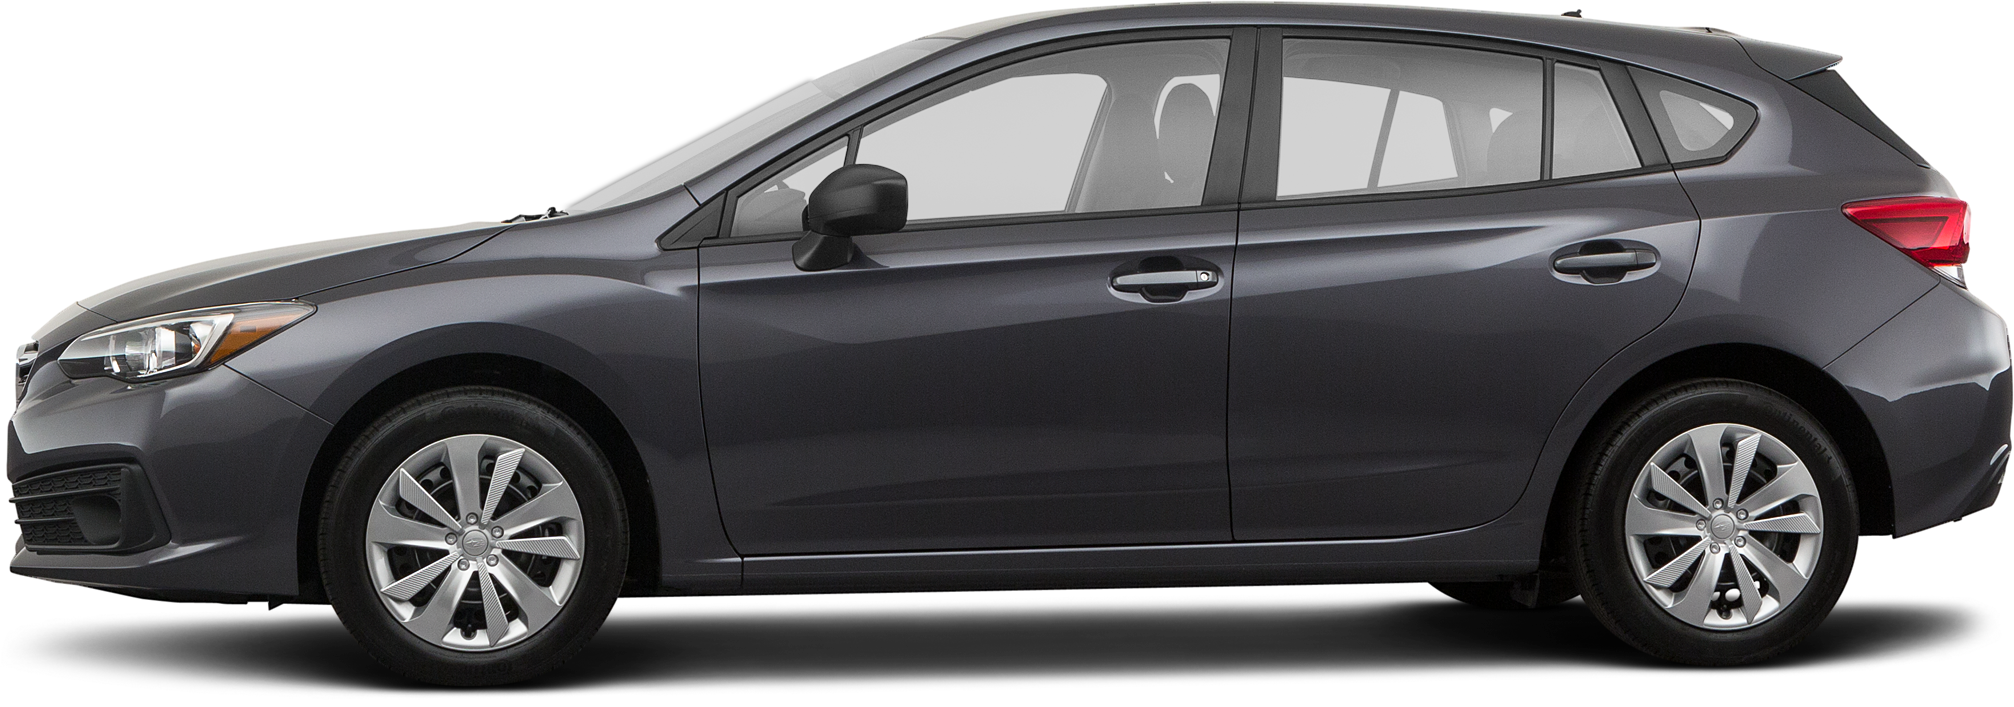 2020 Subaru Impreza 5-door Base Trim Level